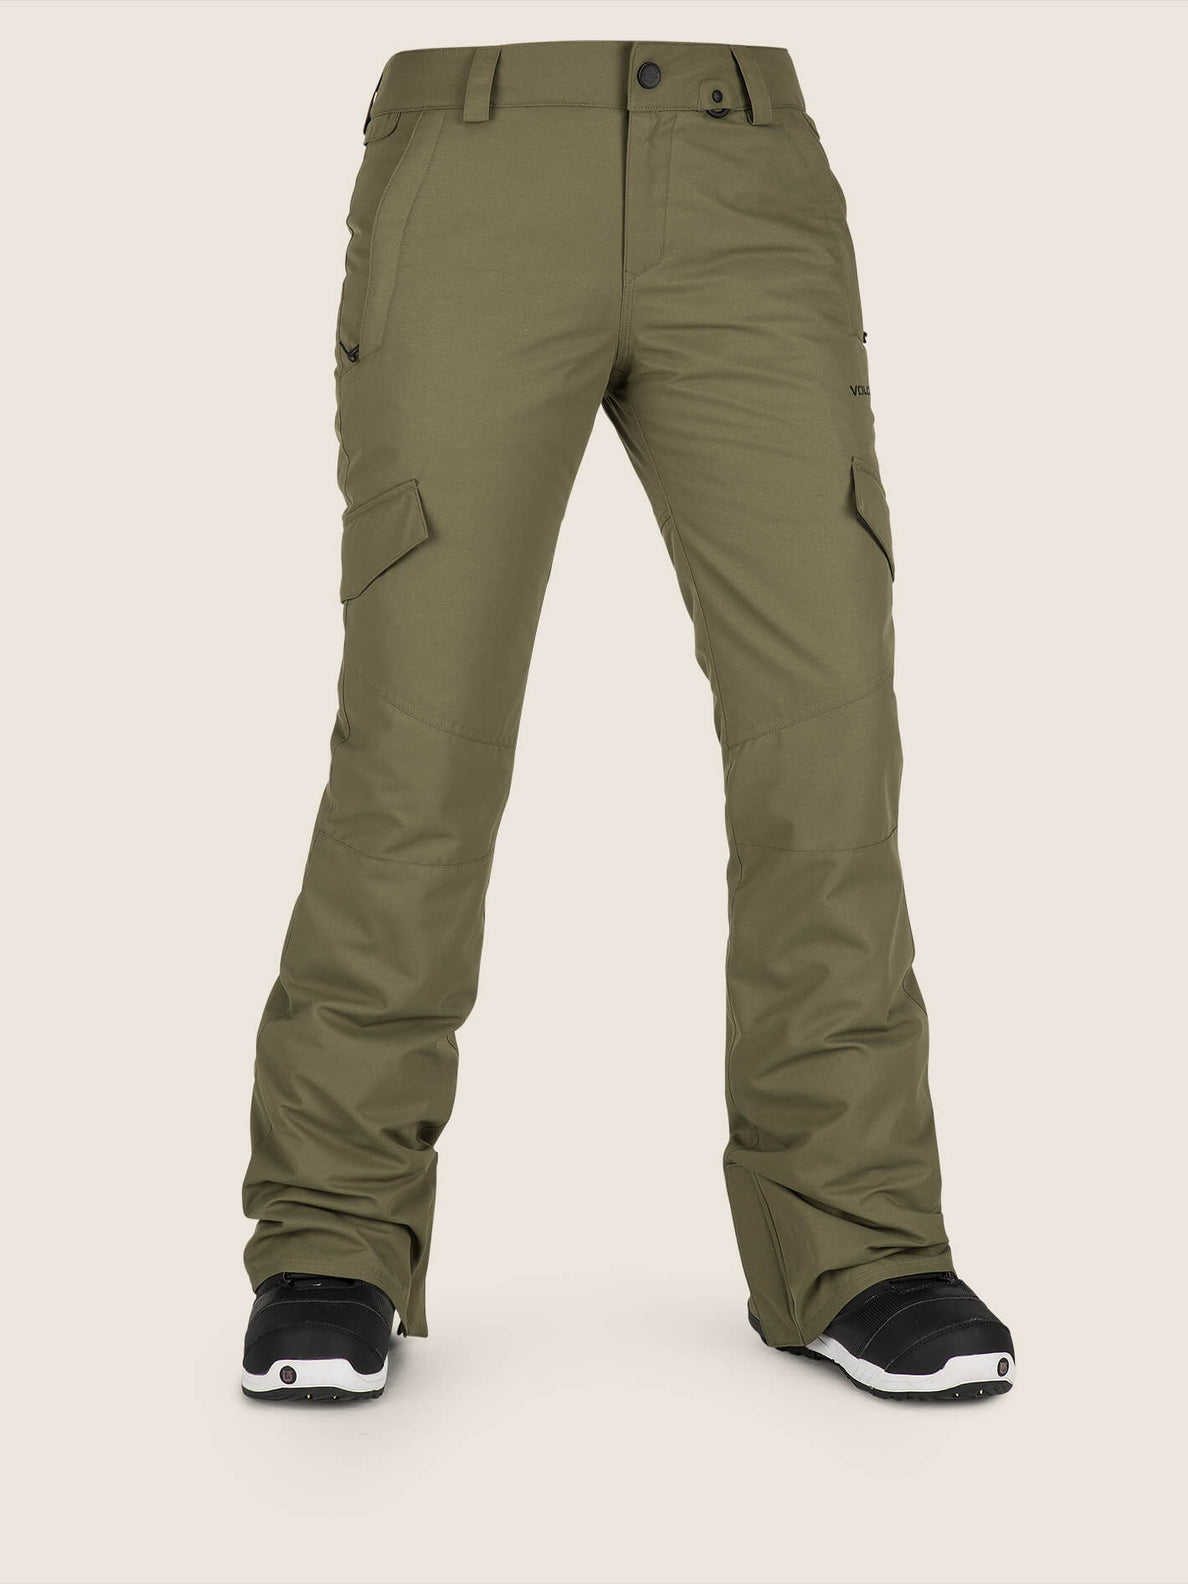 Bridger Insulated Pant In Snow Military, Front View